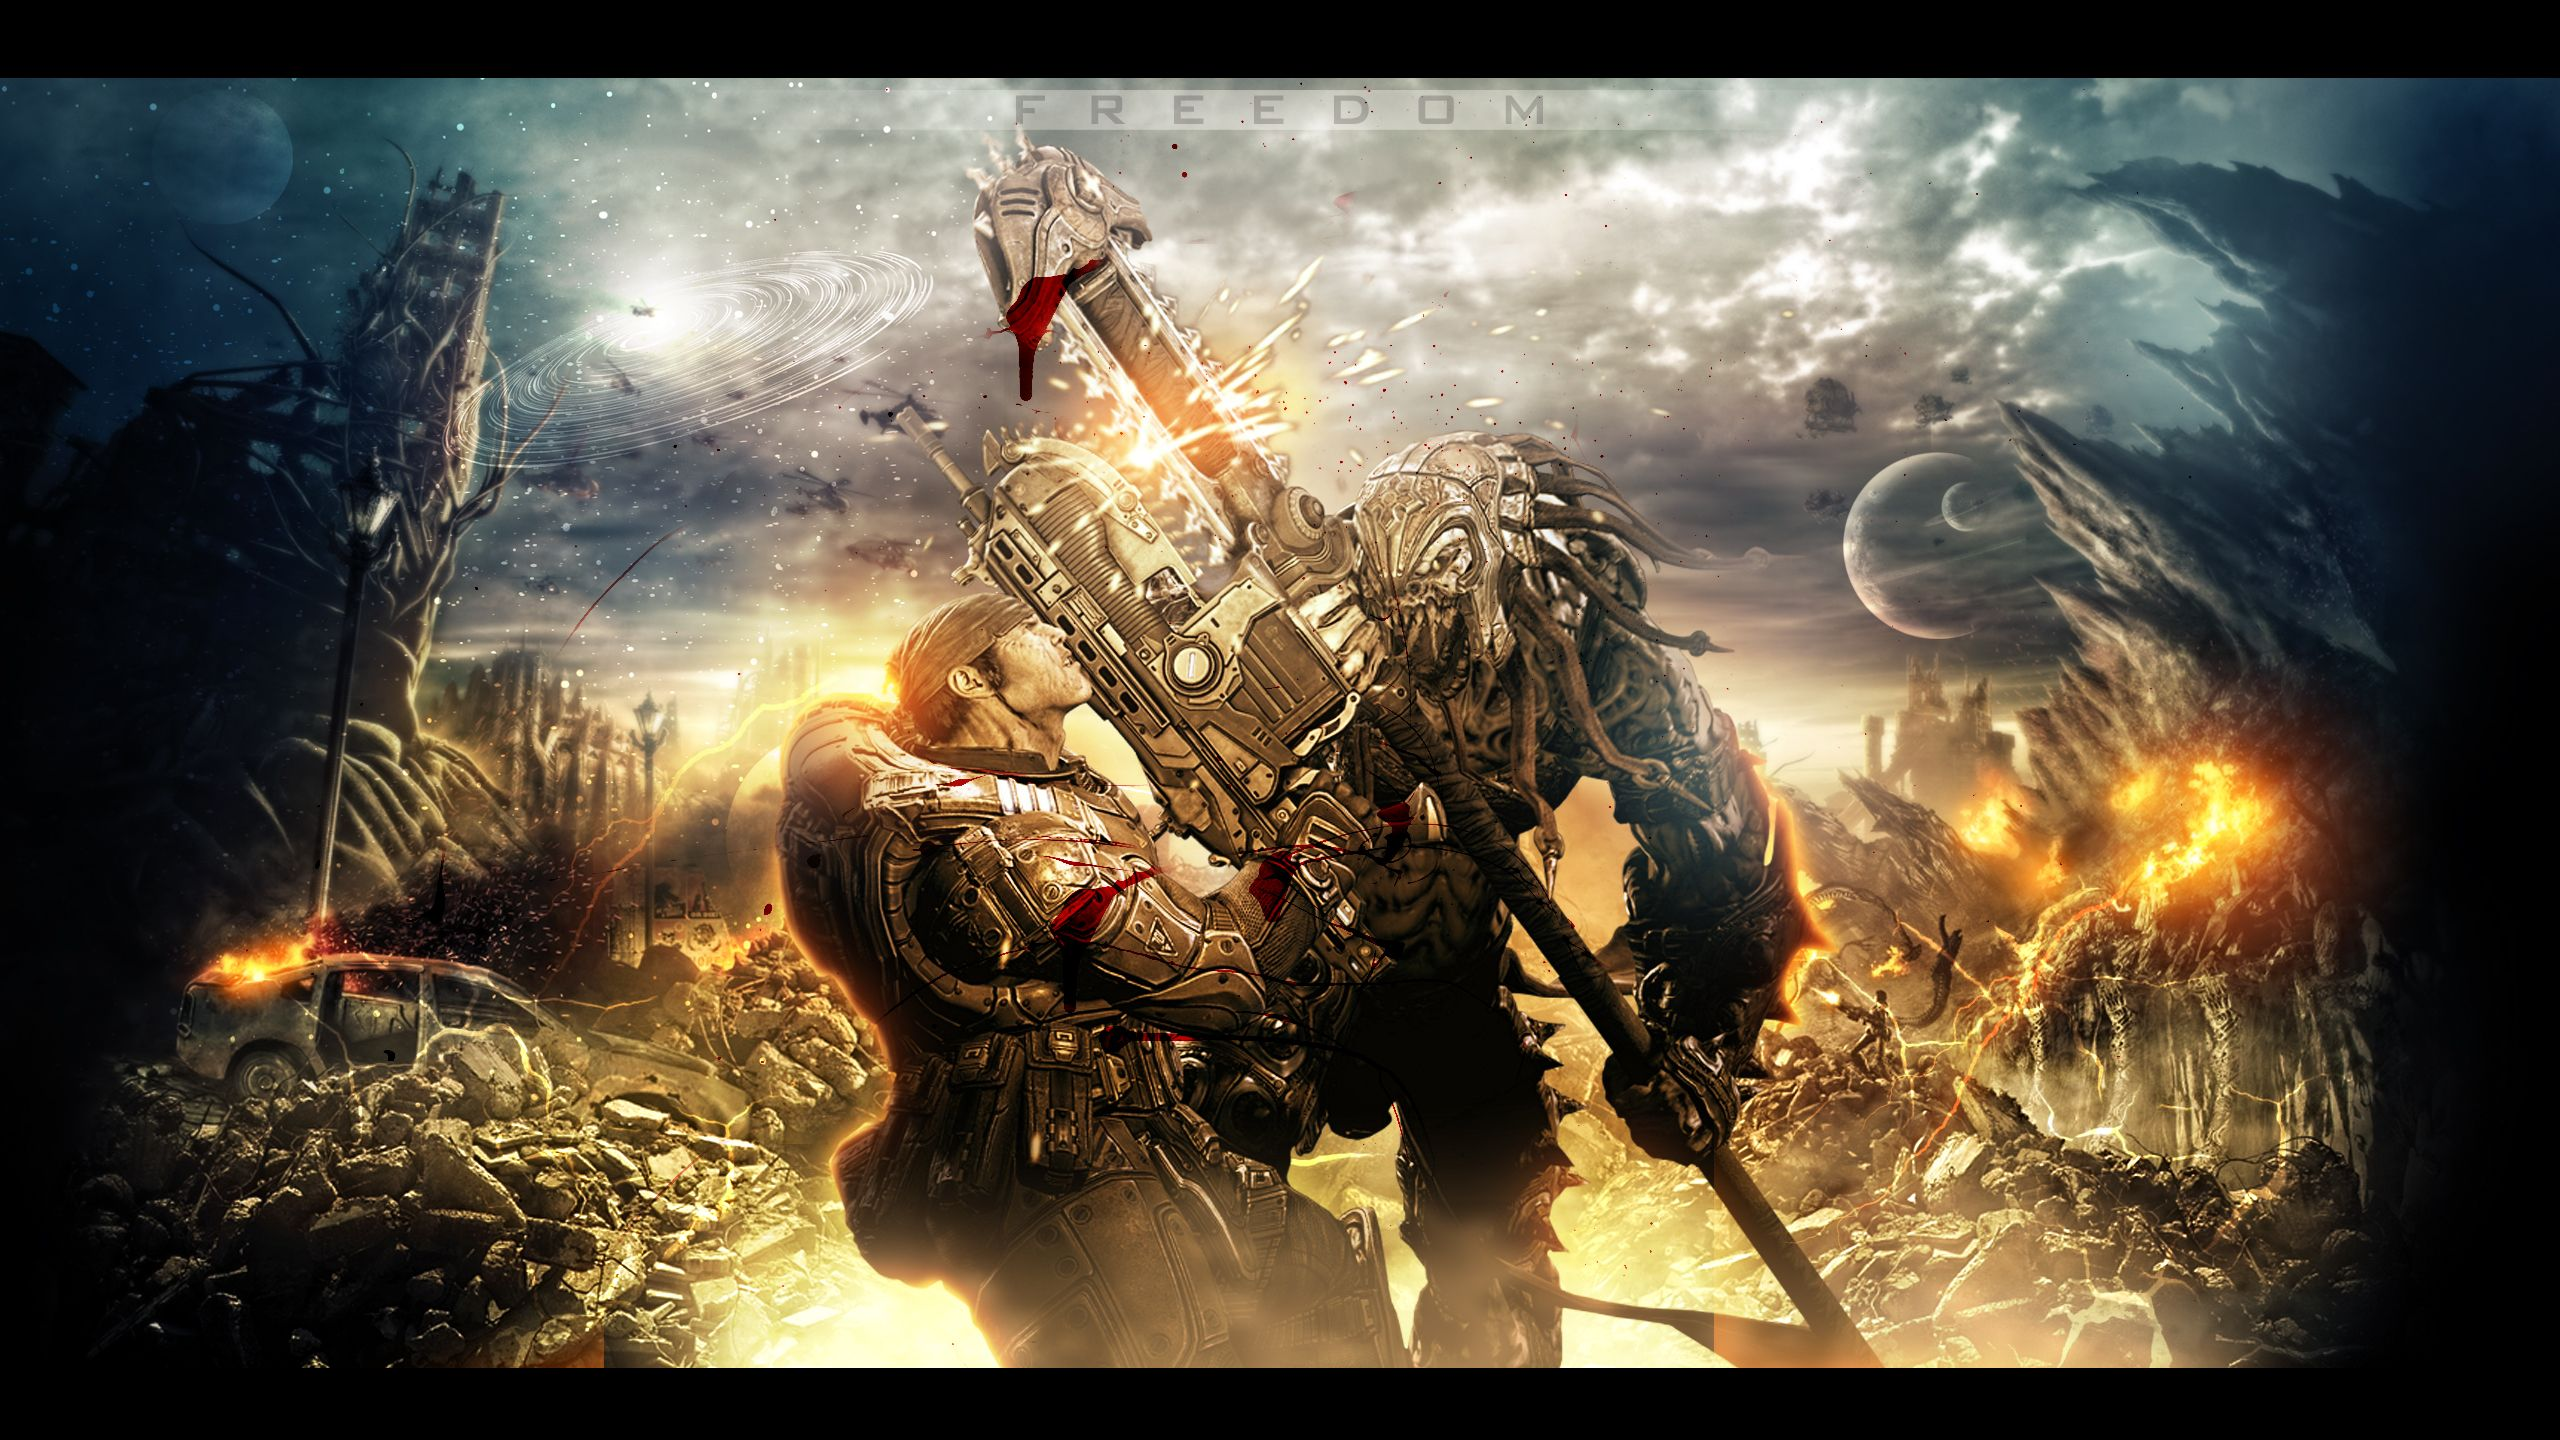 Gears Of War 3 Wallpapers Top Free Gears Of War 3 Backgrounds